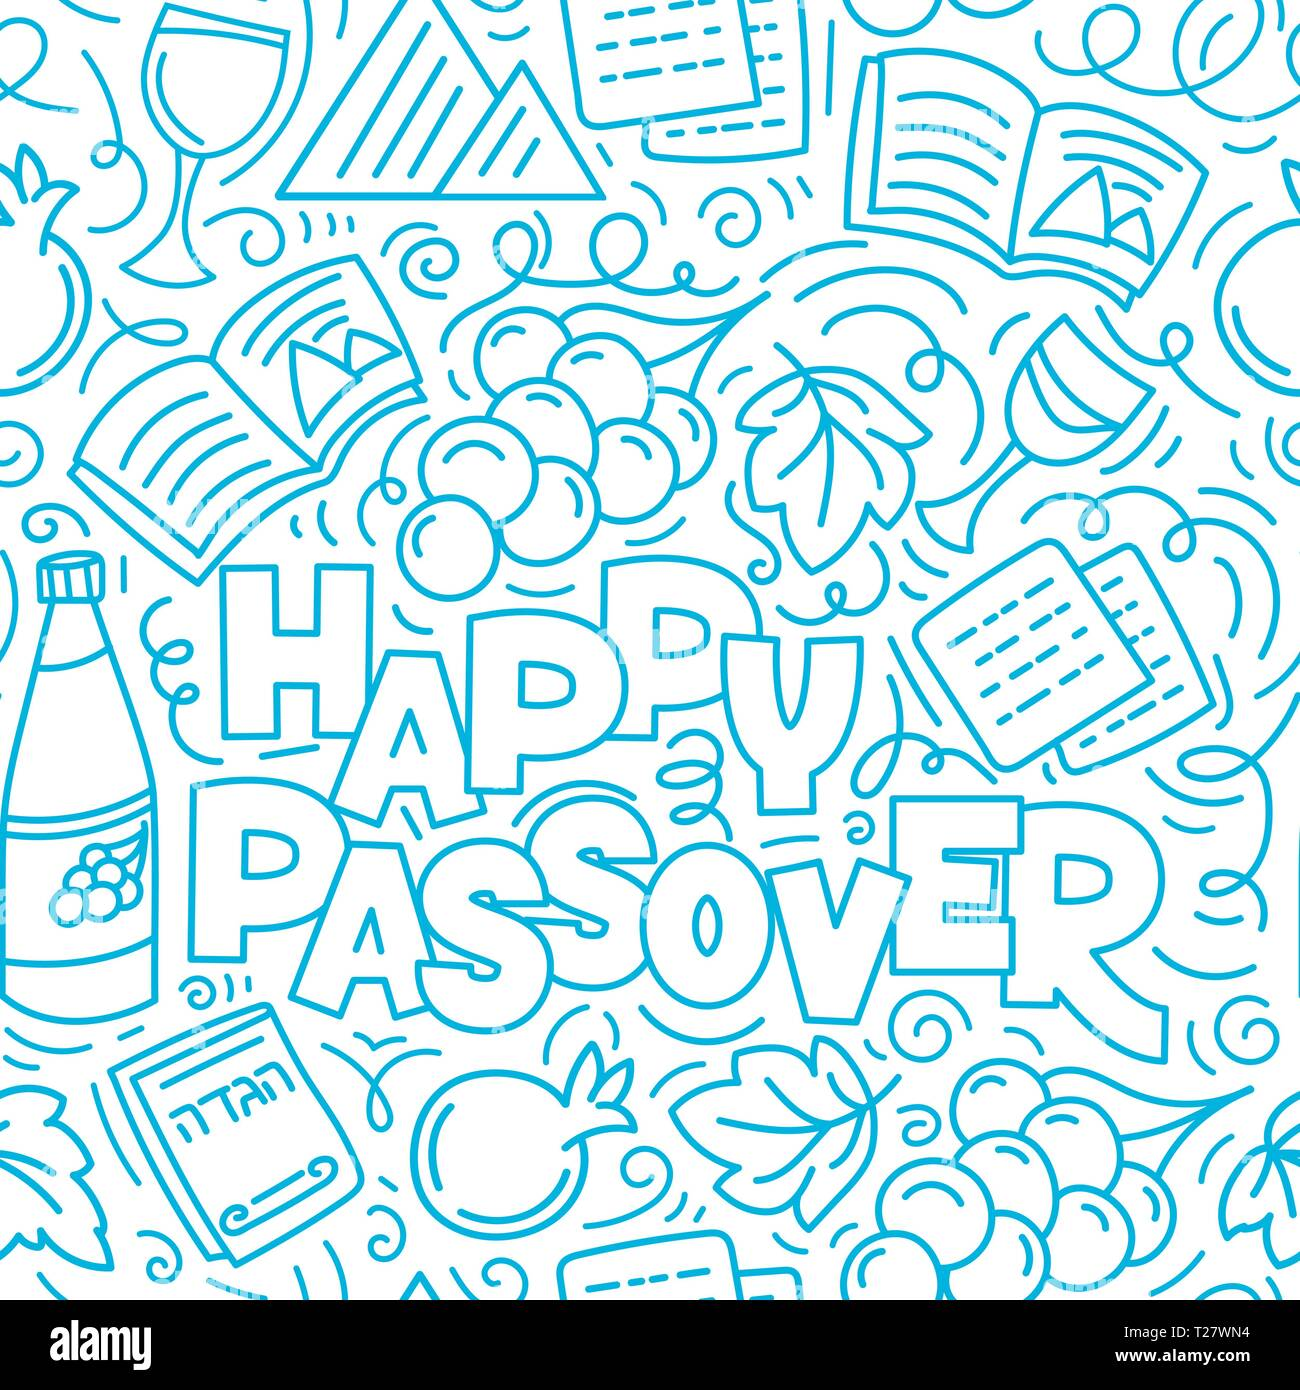 Passover seamless pattern (Jewish holiday Pesach). Hebrew text: happy Passover. Linear vector illustration doodle style. Isolated on white background. - Stock Vector